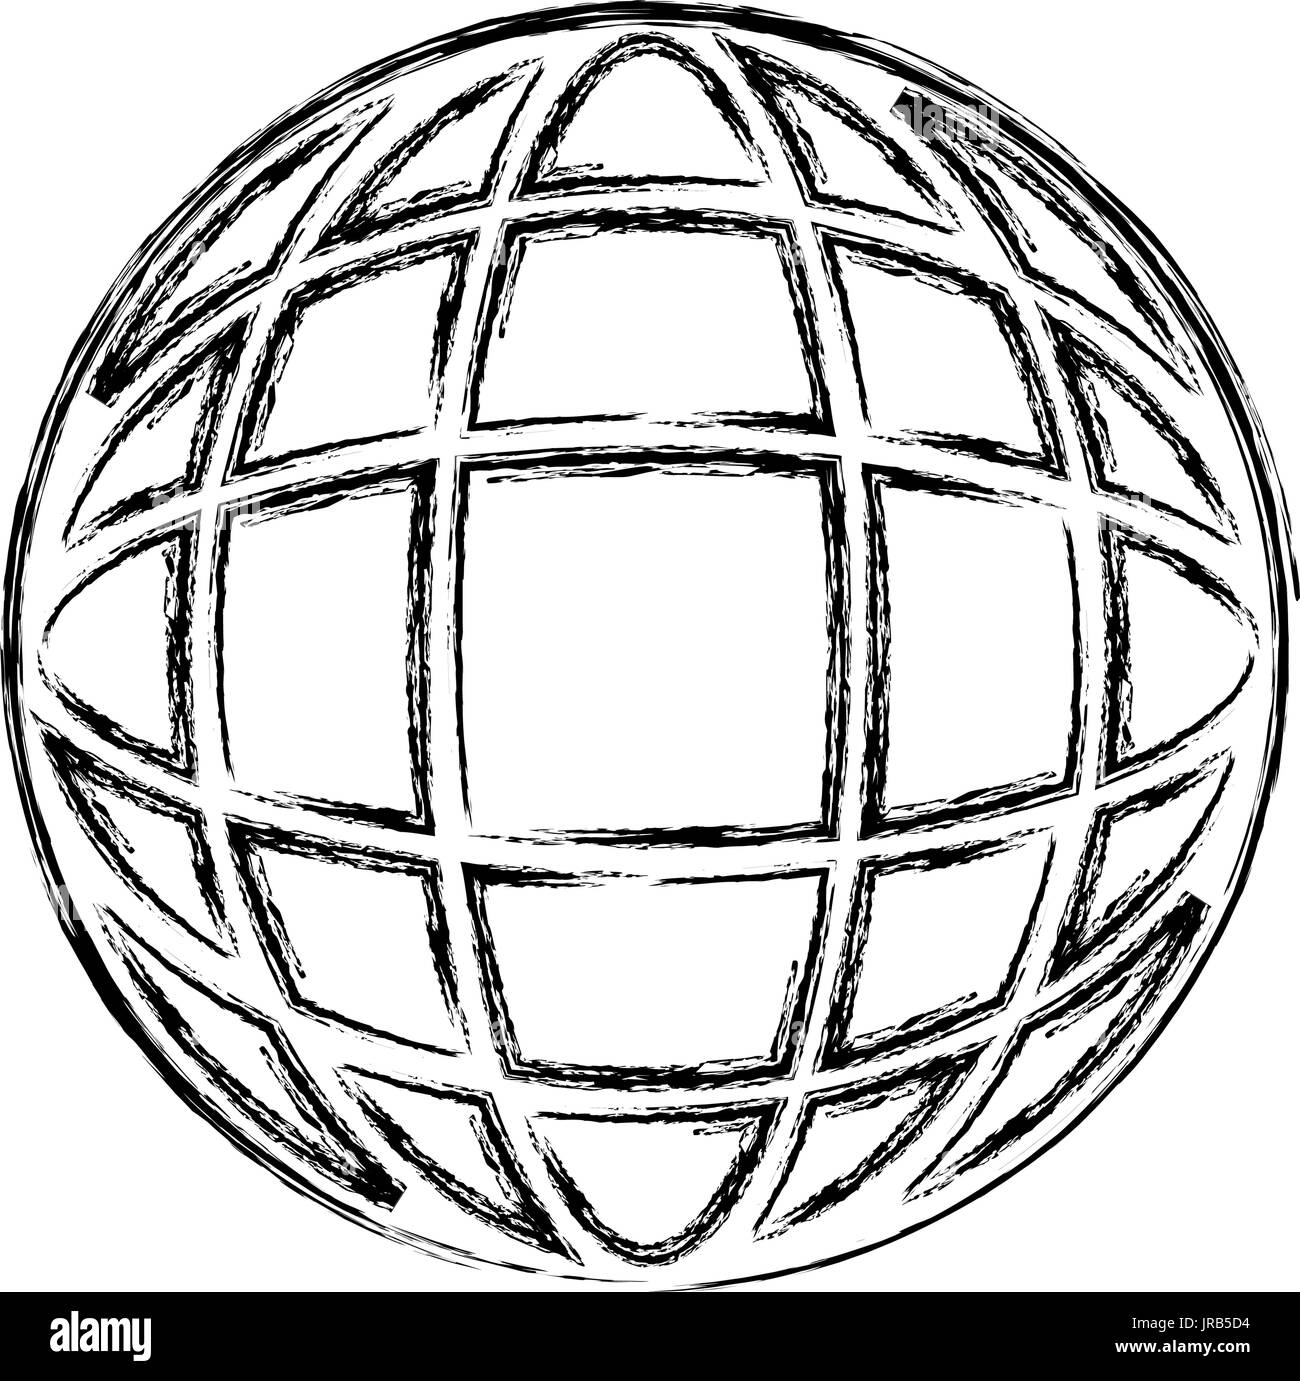 Wire Ball Stock Vector Images - Page 3 - Alamy